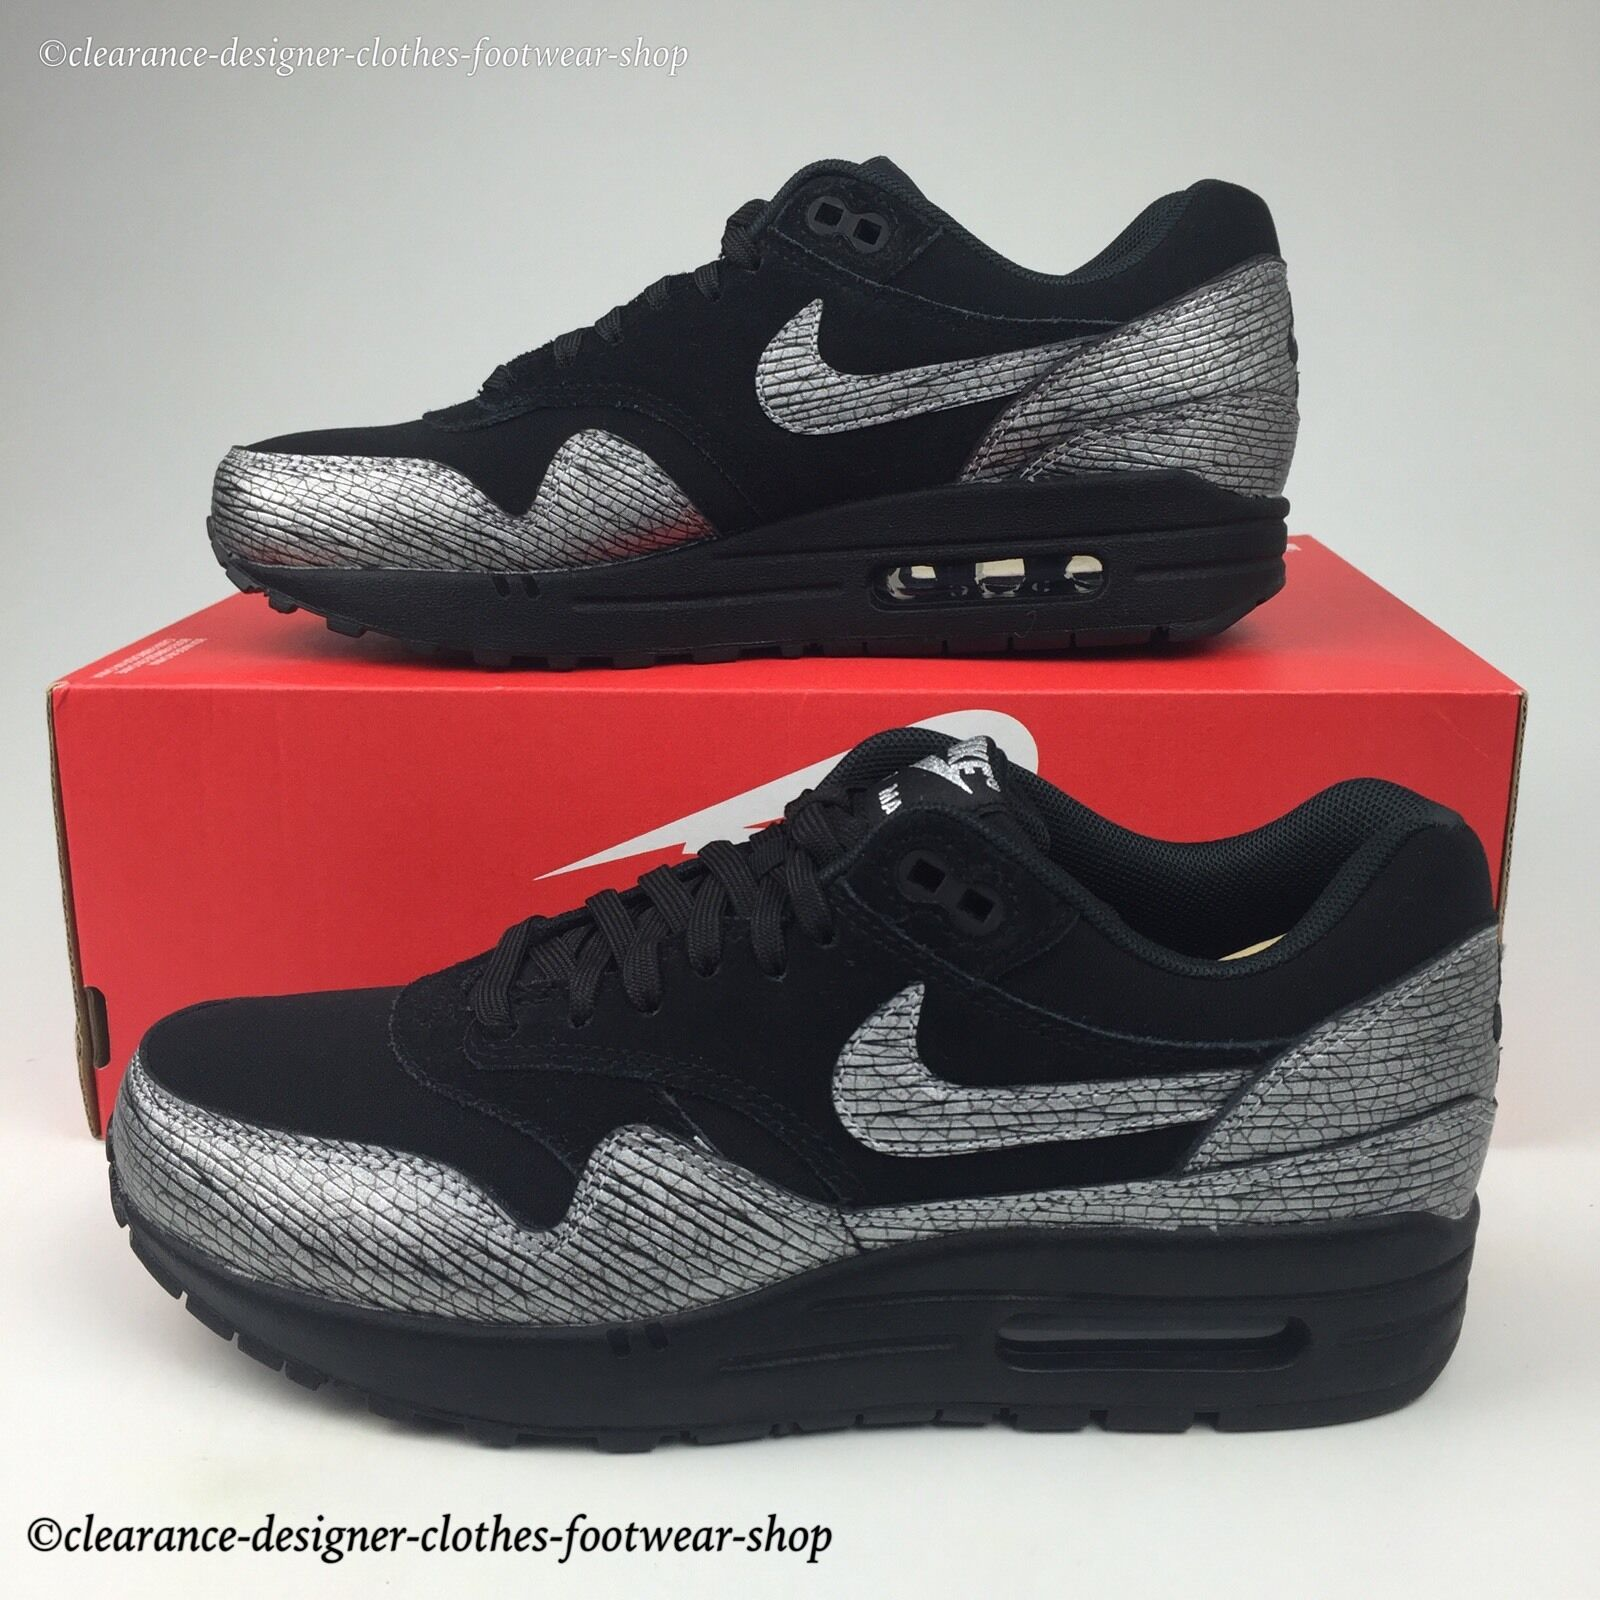 NIKE AIR MAX 1 PREMIUM PREMIUM PREMIUM TRAINERS Femme GIRLS LADIES CASUAL chaussures5  125 c73f9a